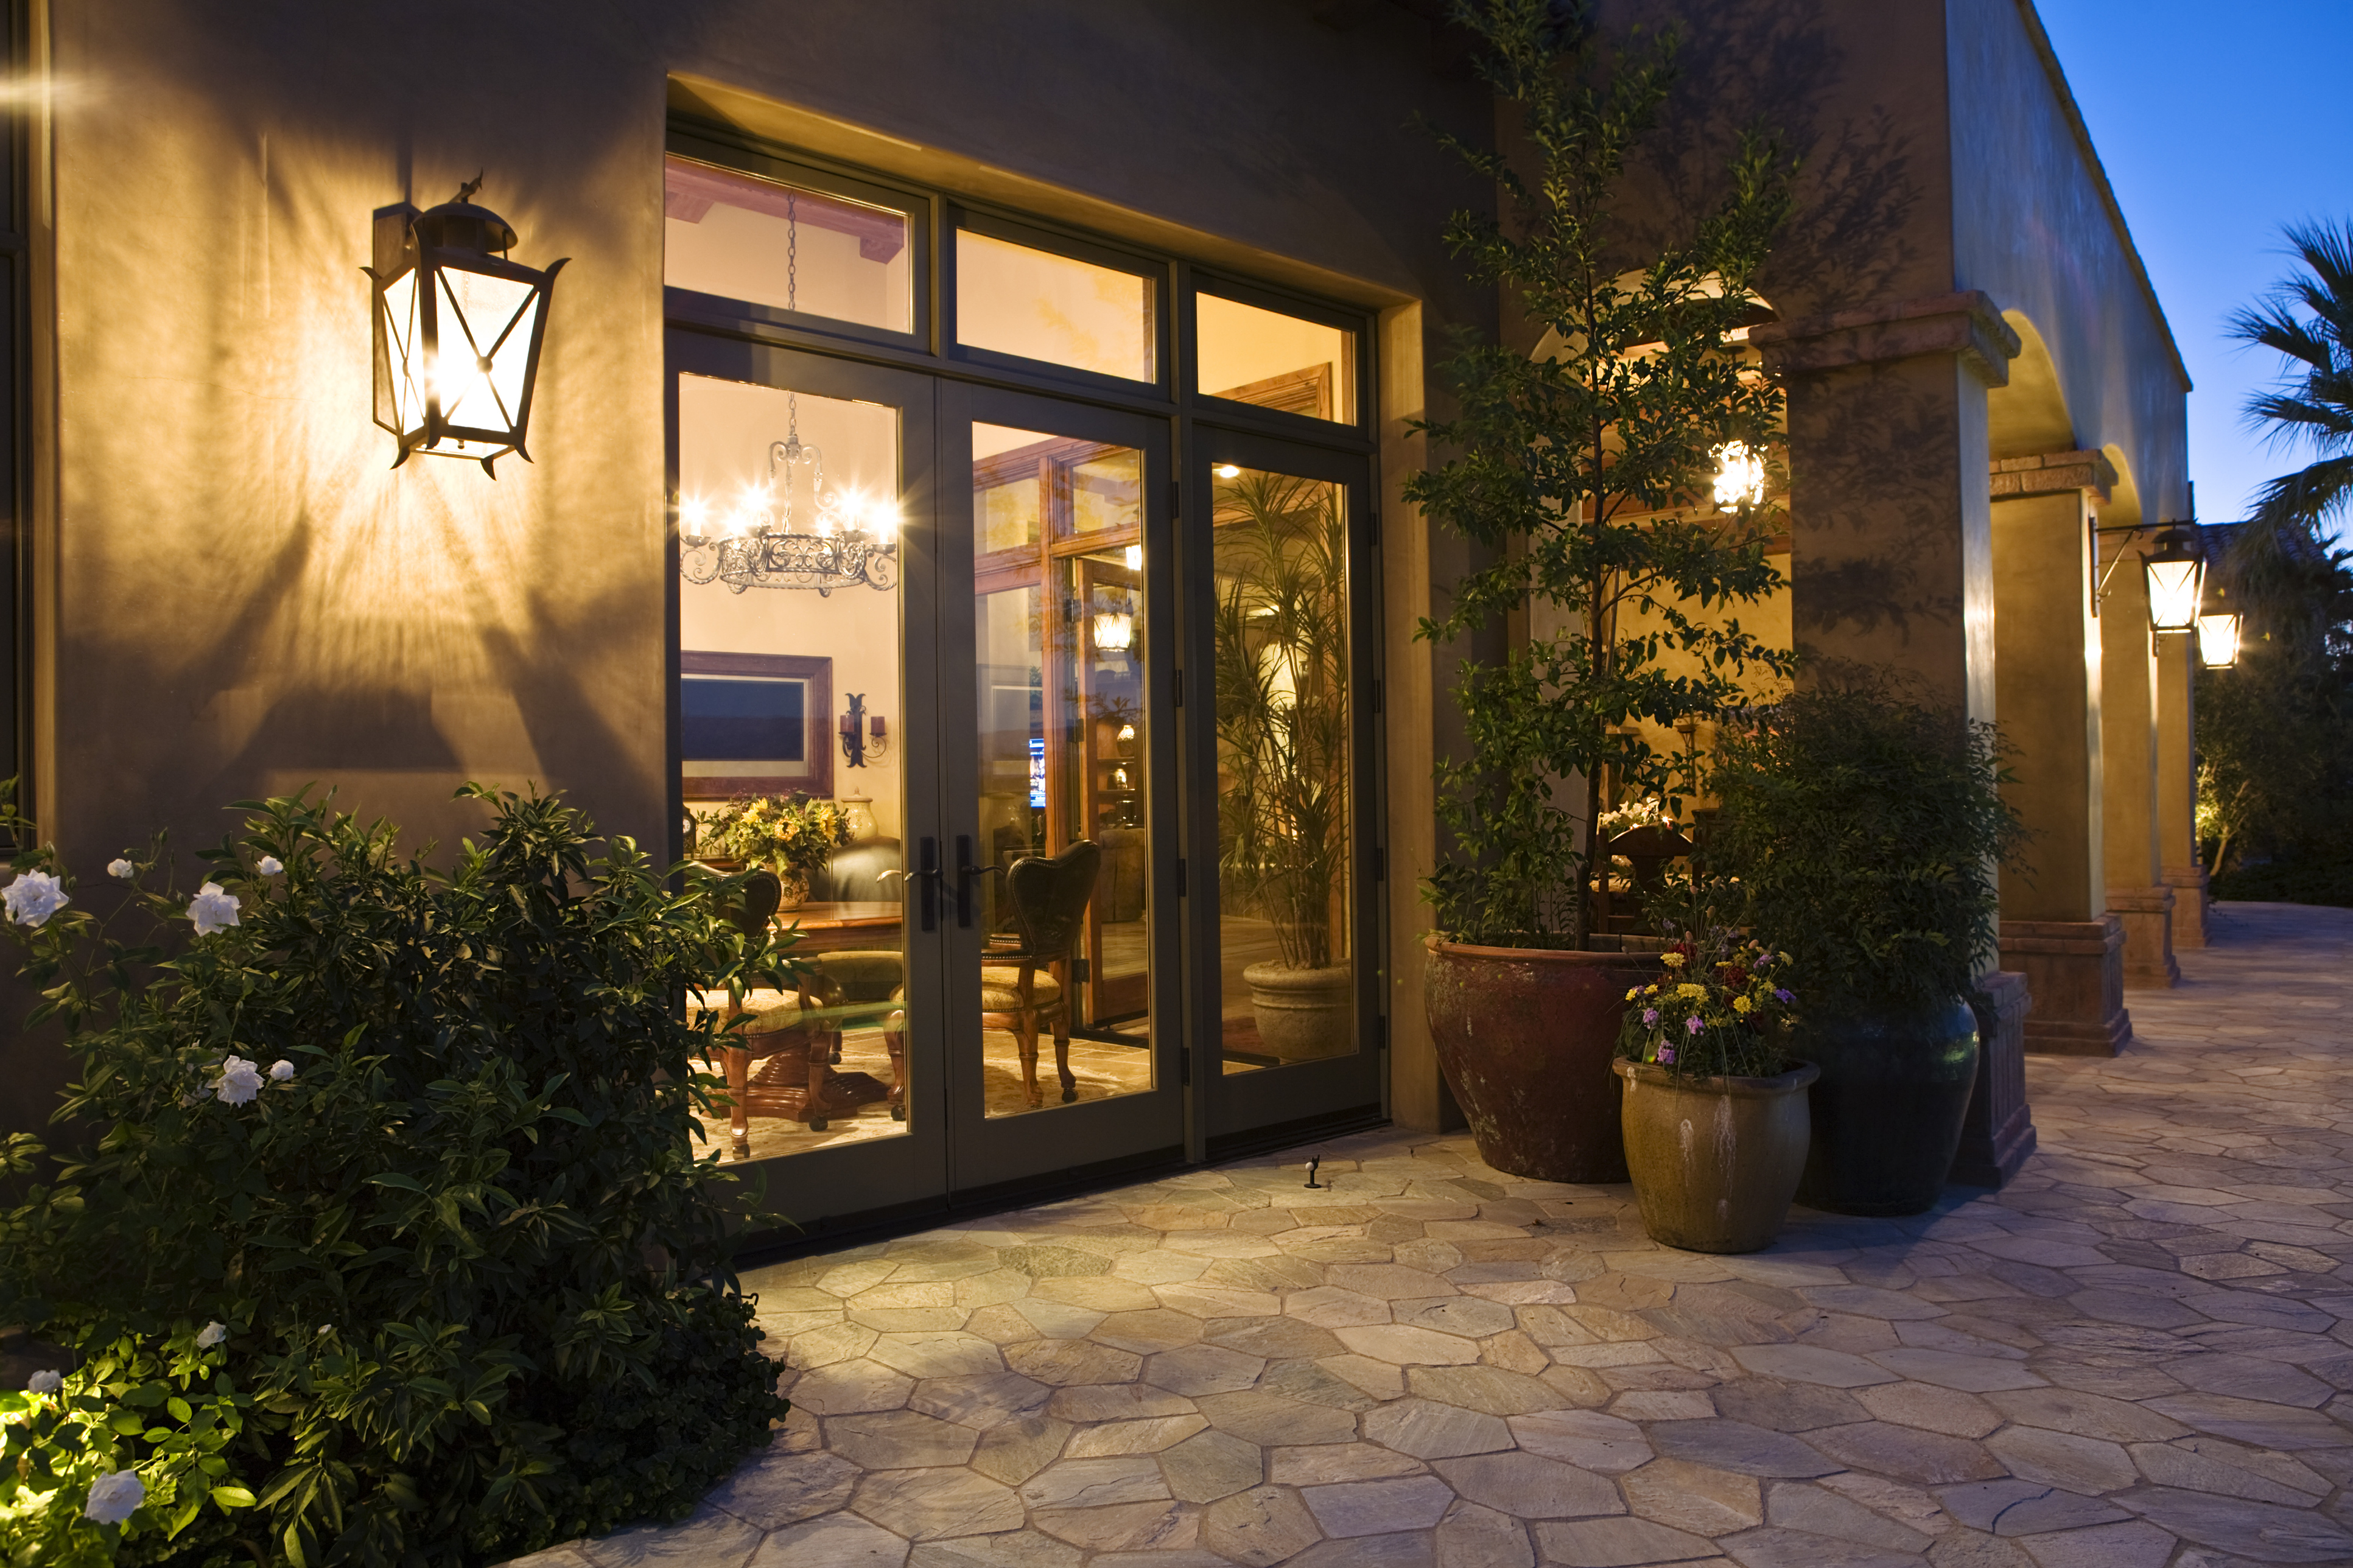 Cree Leds And Modules For Exterior Area Lighting Applications